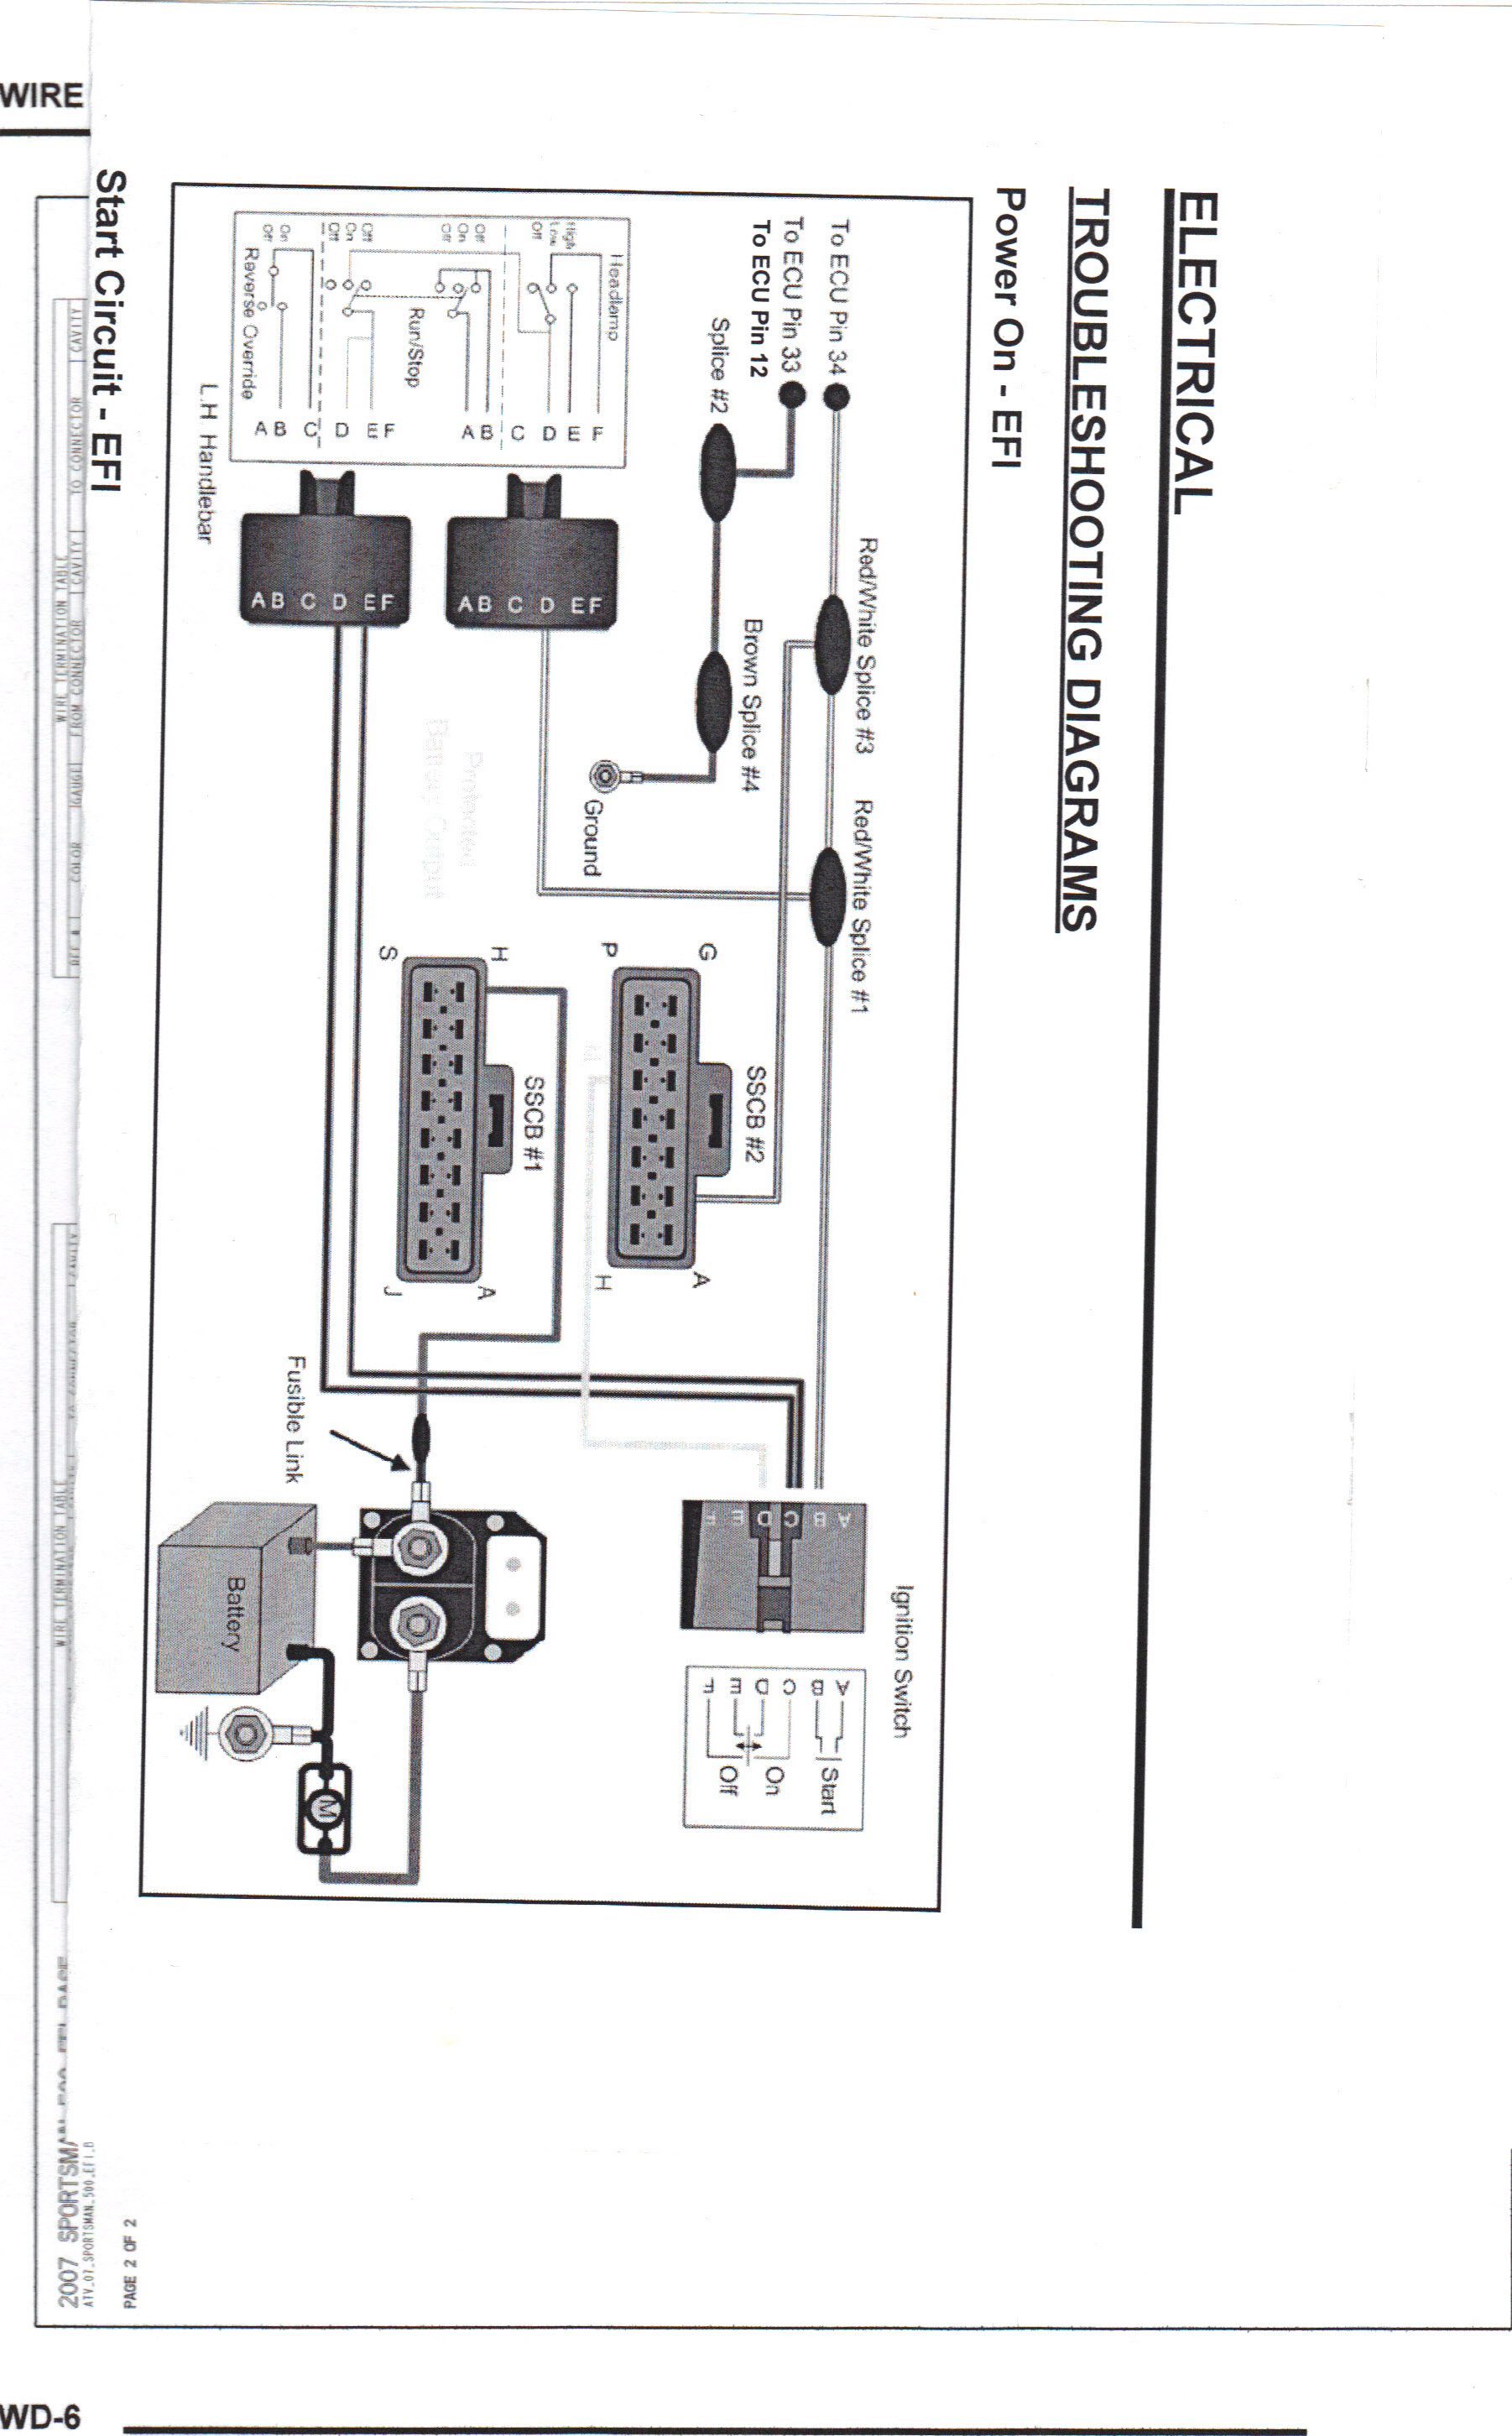 2005 accord brakes schematic